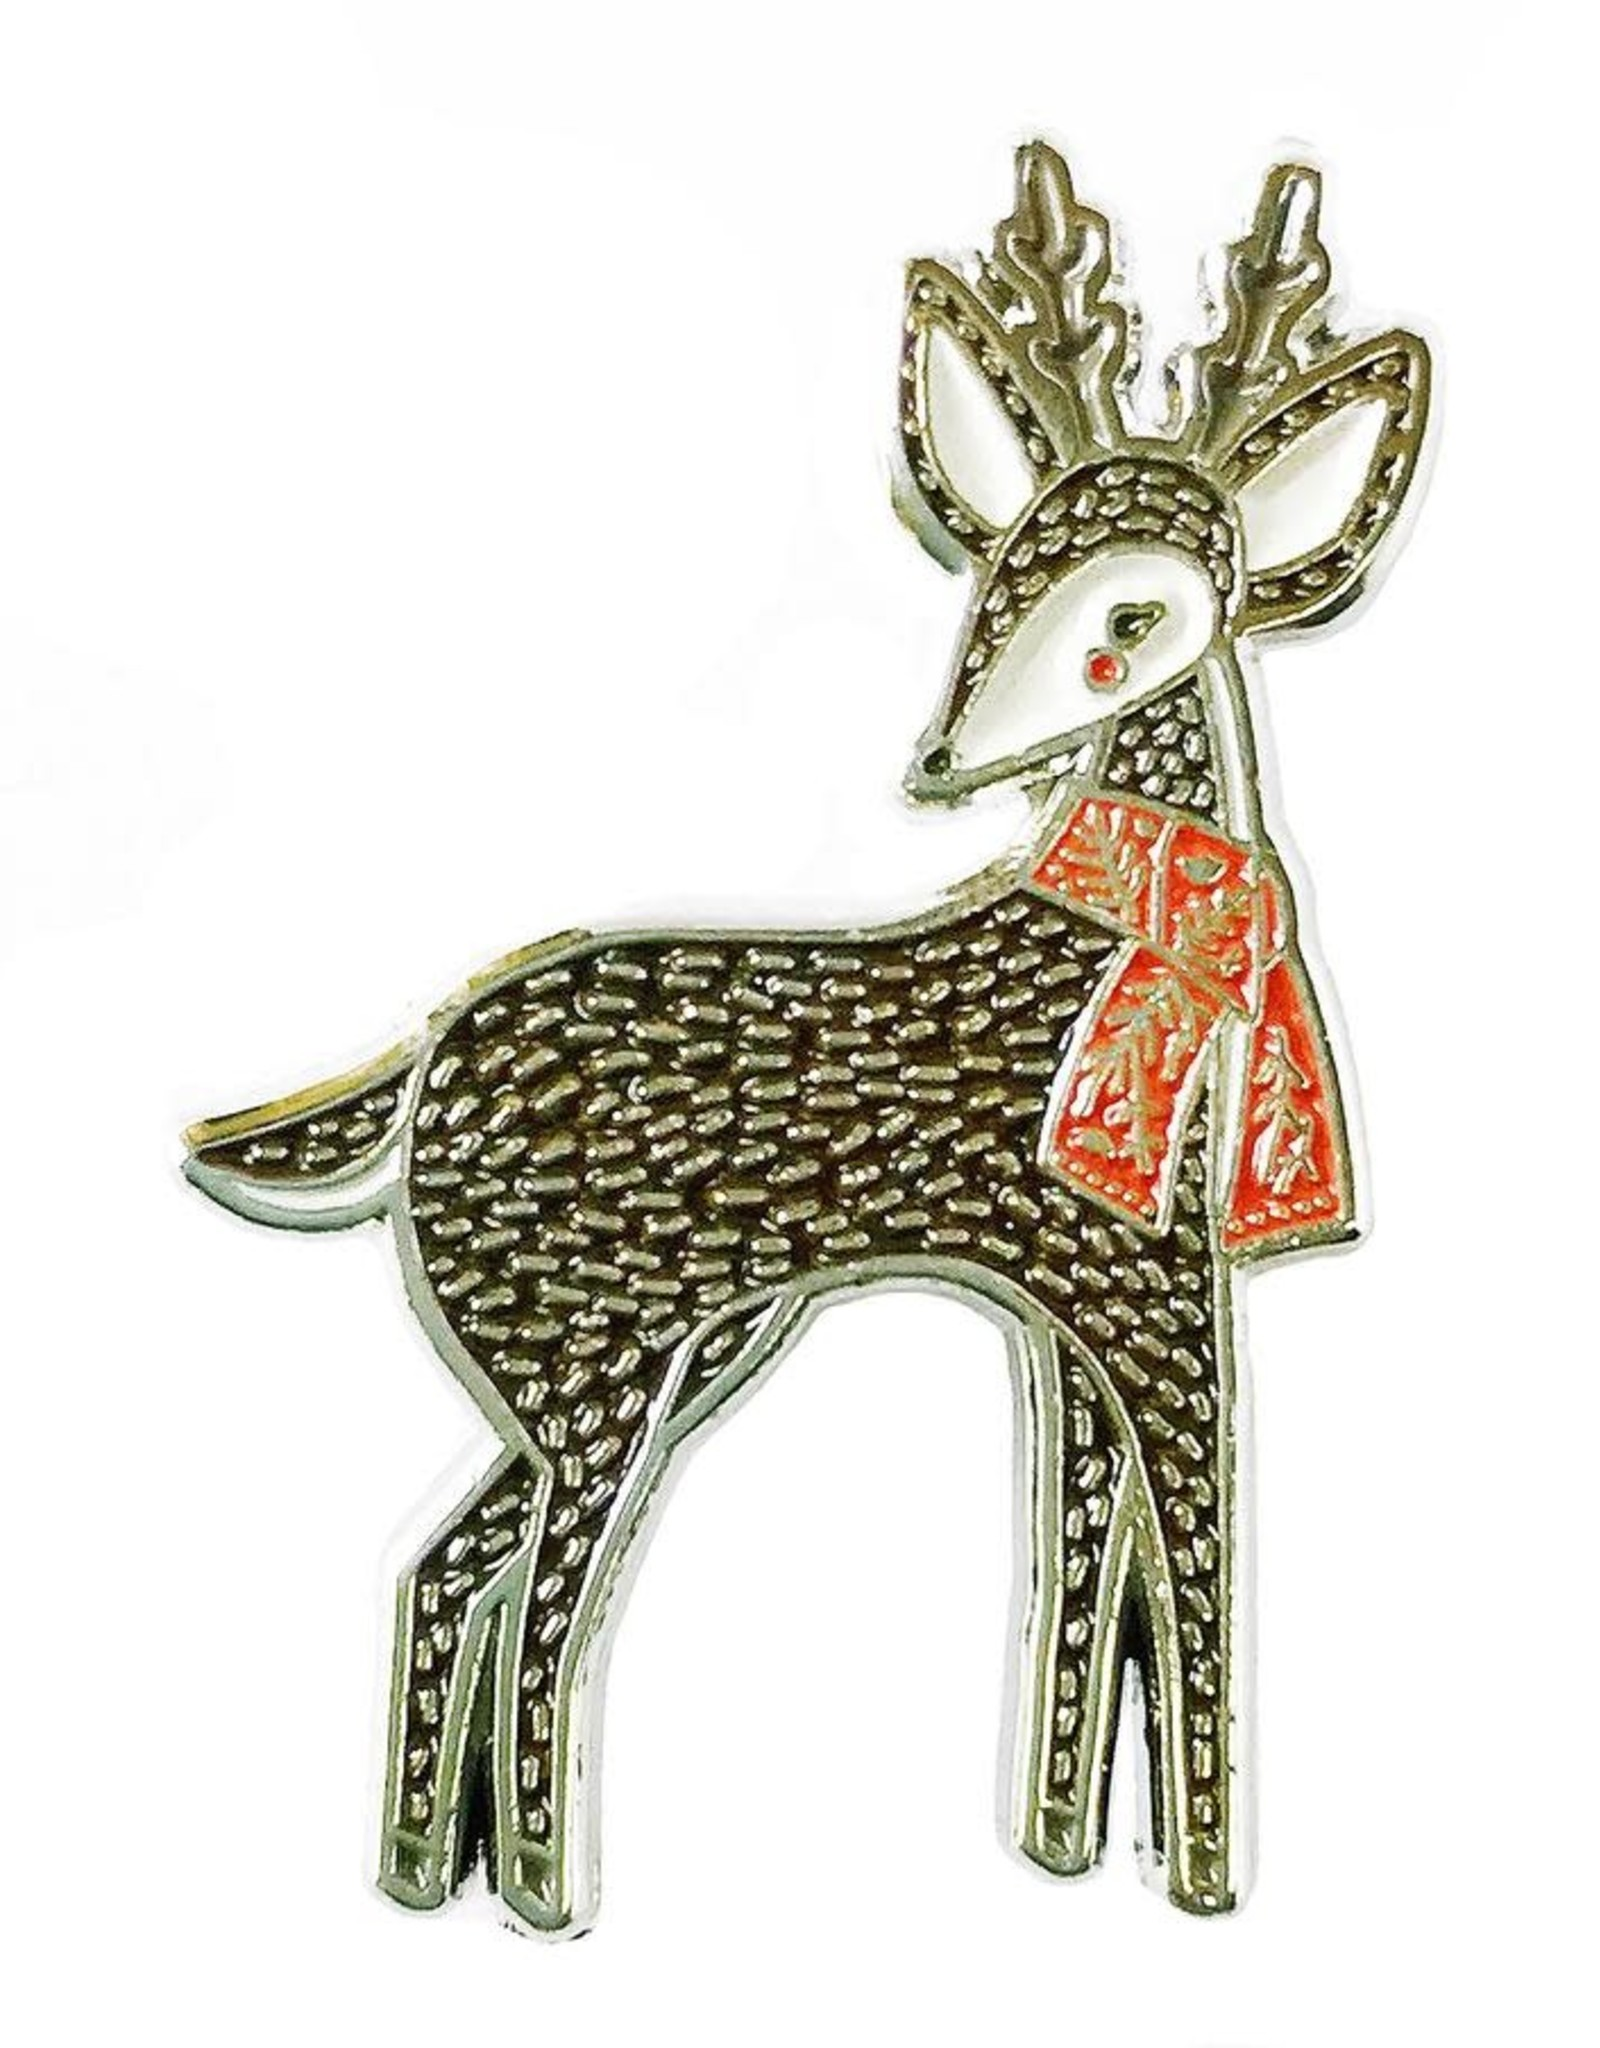 Merriment Deer Enamel Ornament